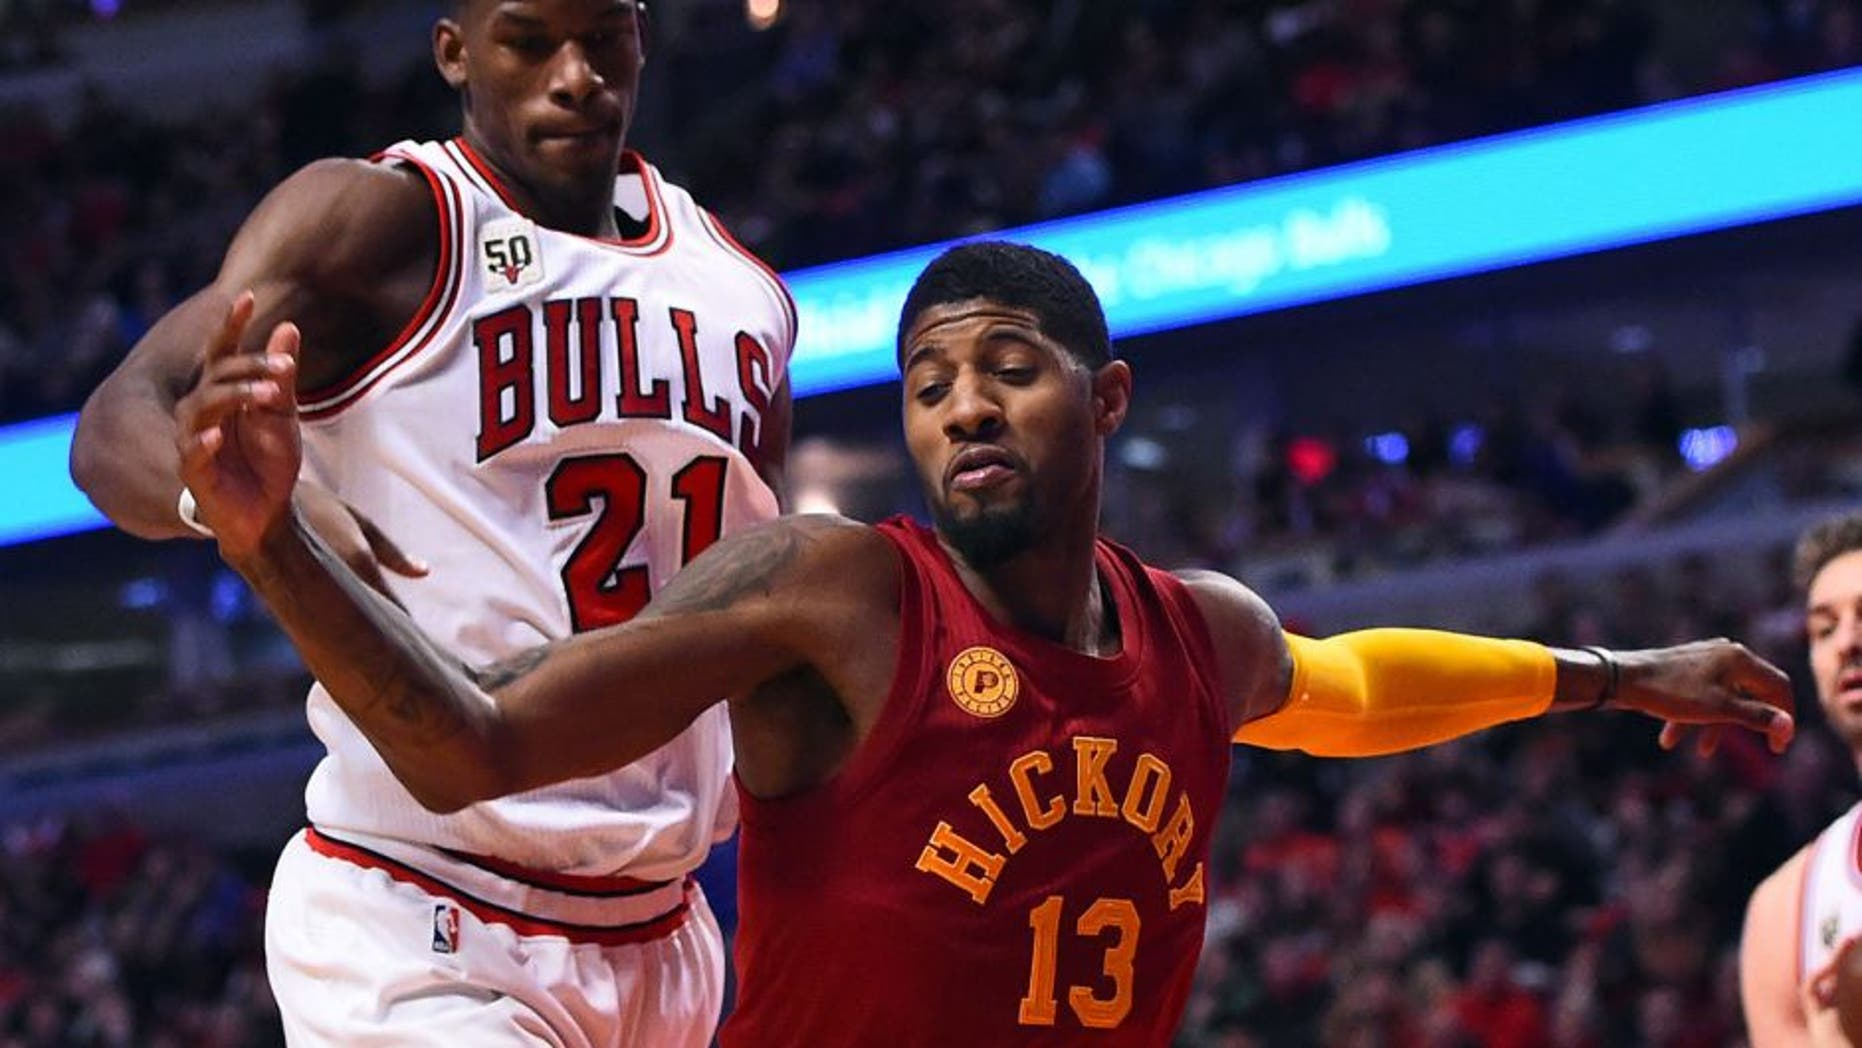 Dec 30, 2015; Chicago, IL, USA; Indiana Pacers forward Paul George (13) knocks the ball away from Chicago Bulls guard Jimmy Butler (21) during the second half at the United Center. Mandatory Credit: Mike DiNovo-USA TODAY Sports